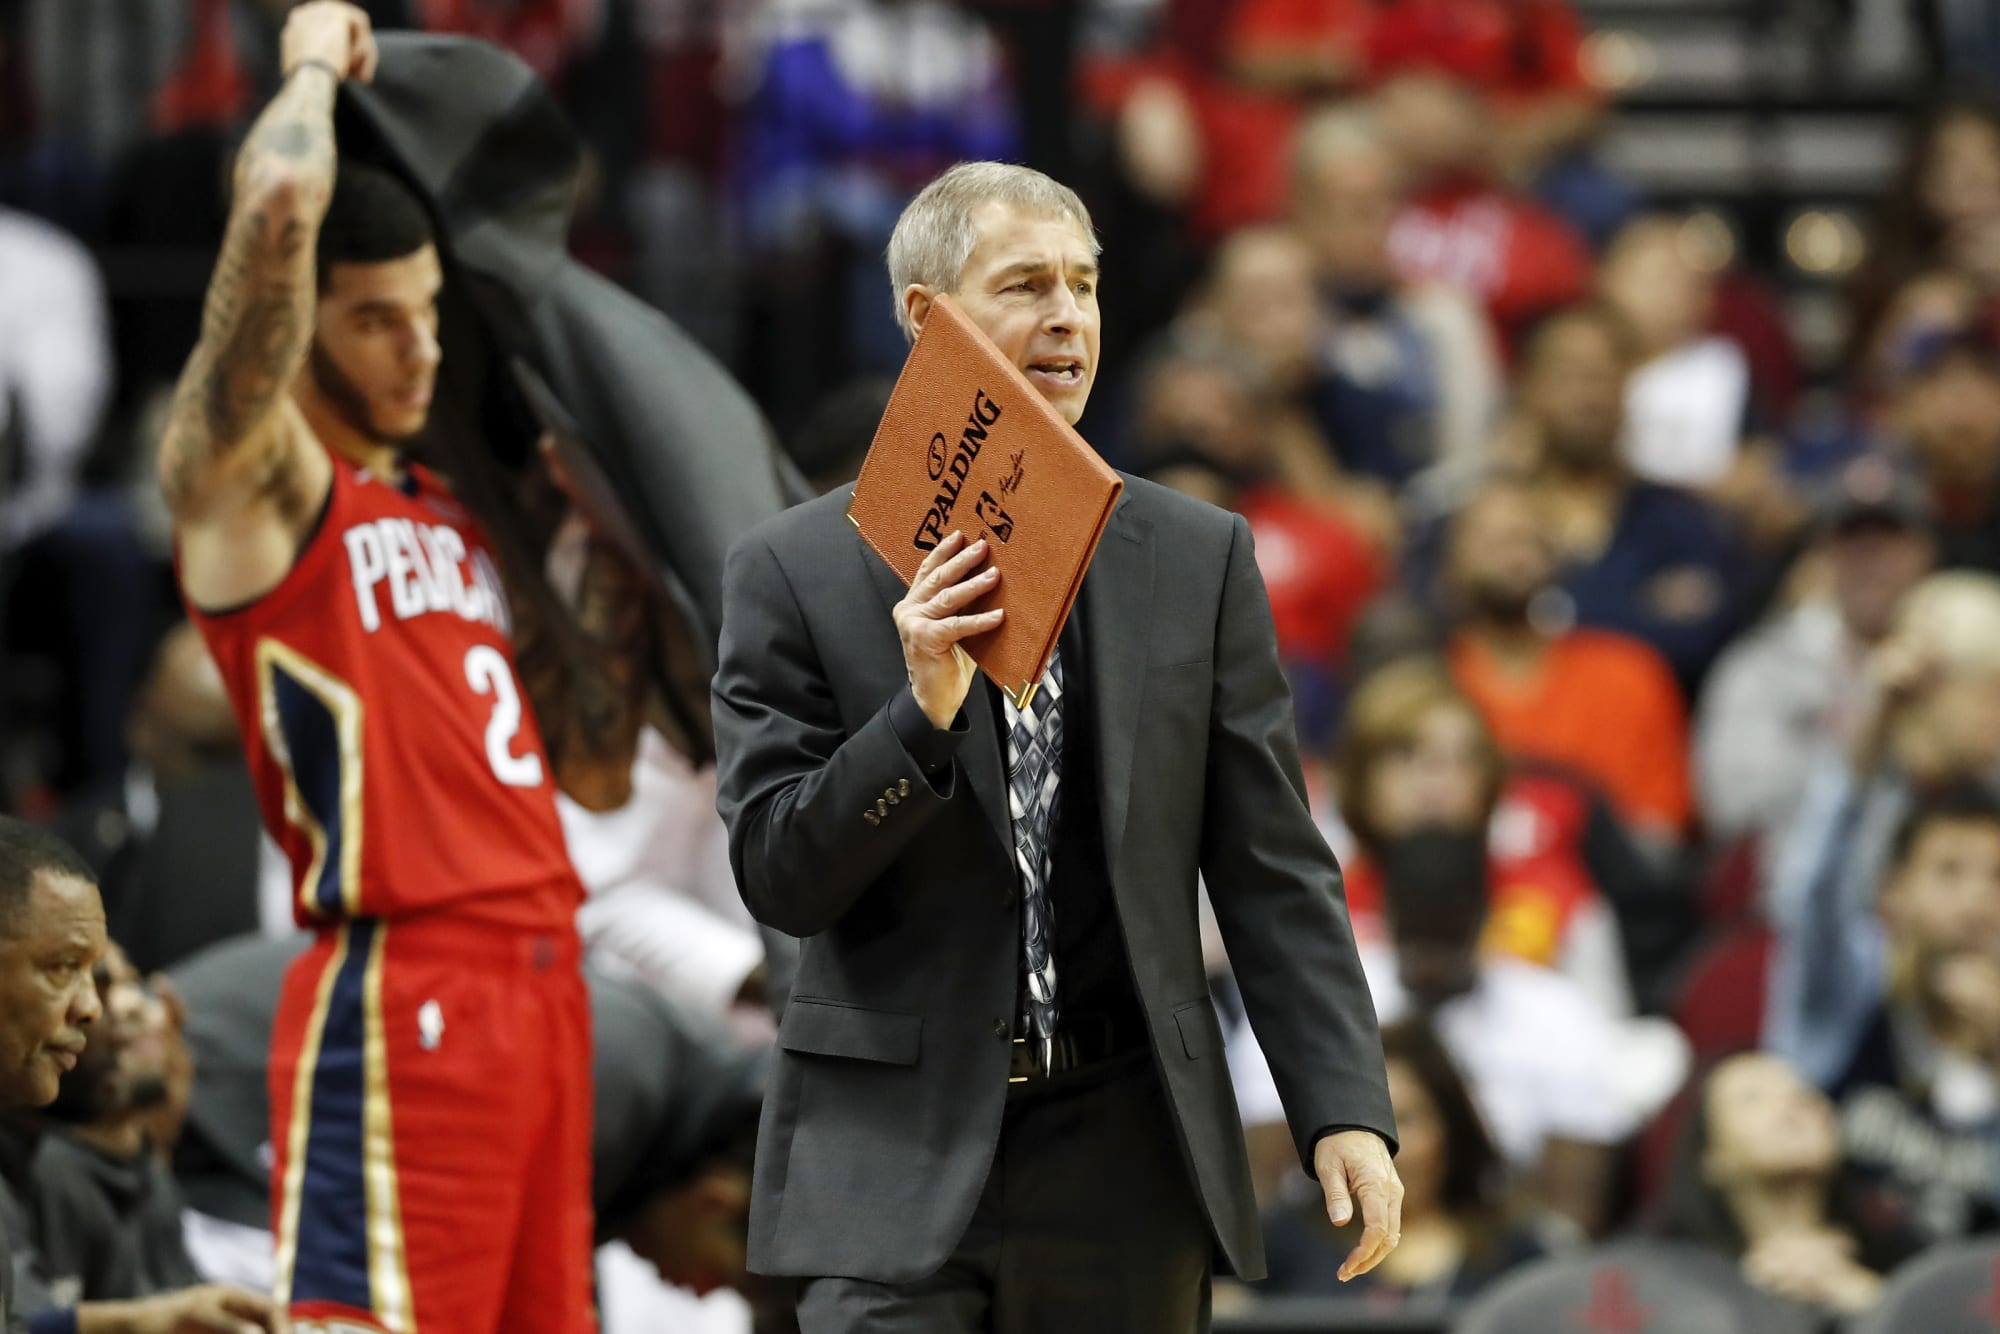 The New Orleans Pelicans Will Be Missing Key Assistant Coach in Orlando